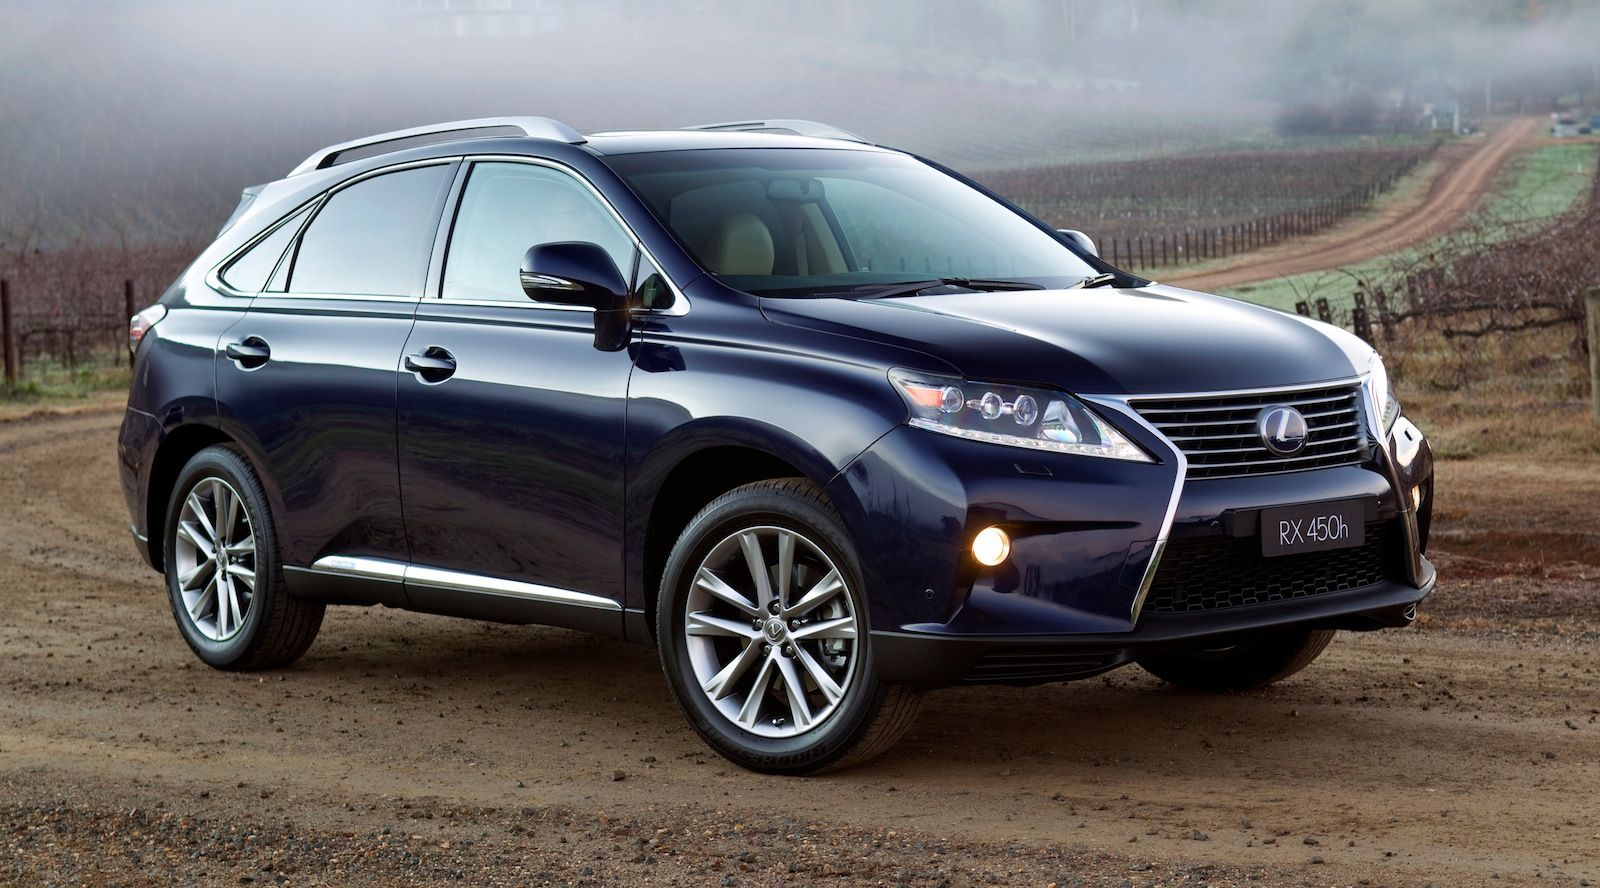 2016 Lexus Rx Release Date Car Revolution Hd Gallery Lexus Luxury Suv Cool Cars Images